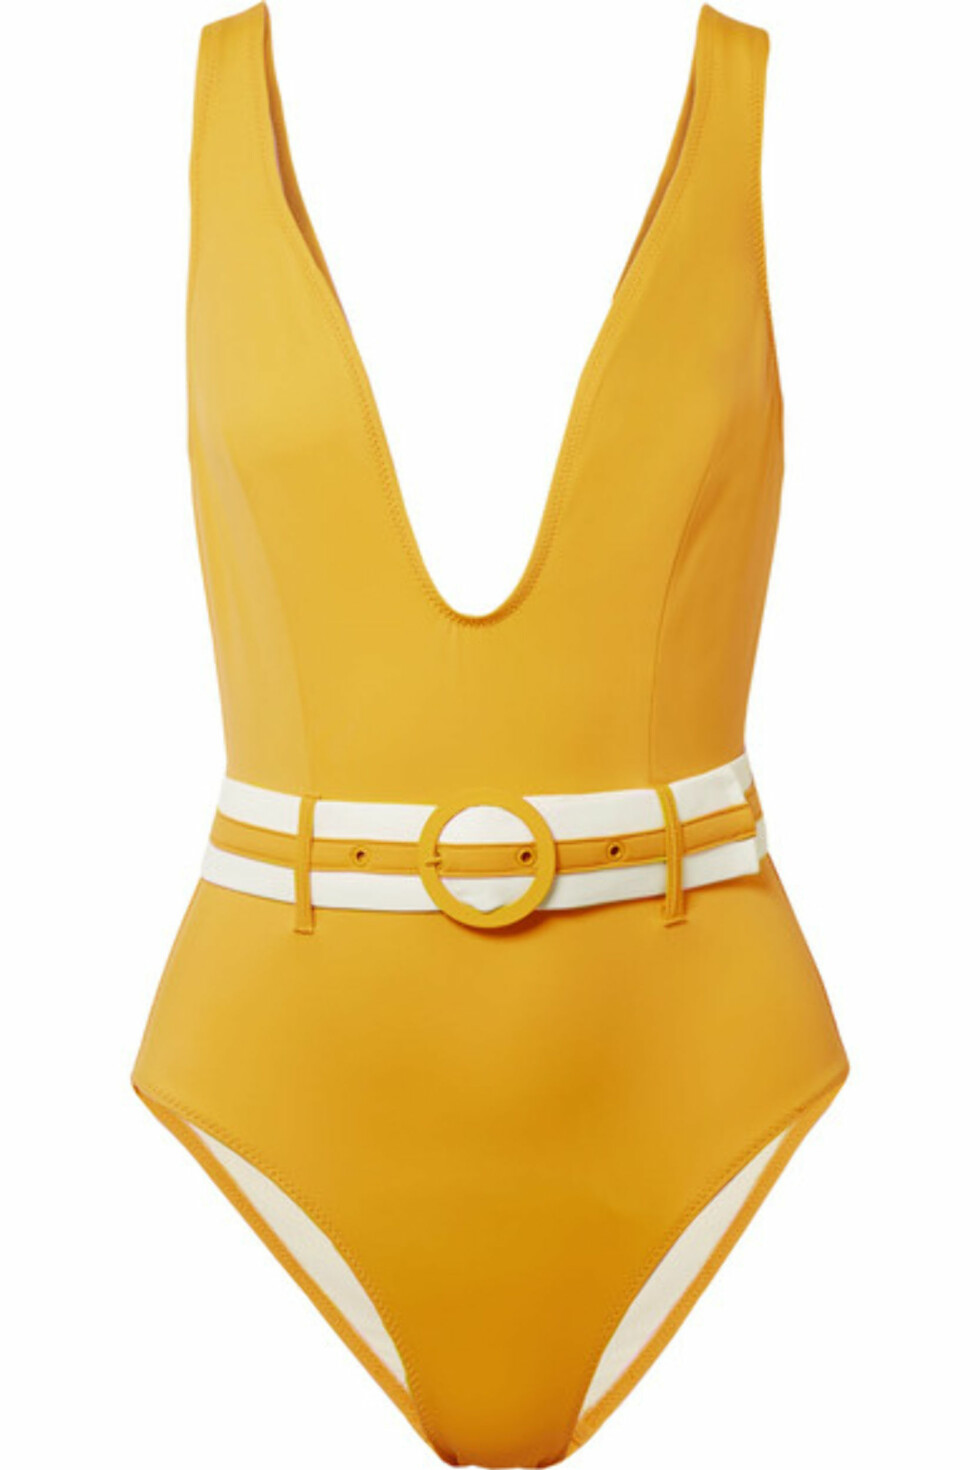 Badedrakt fra Solid & Striped |1600,-| https://www.net-a-porter.com/gb/en/product/998298/solid___striped/the-victoria-belted-swimsuit